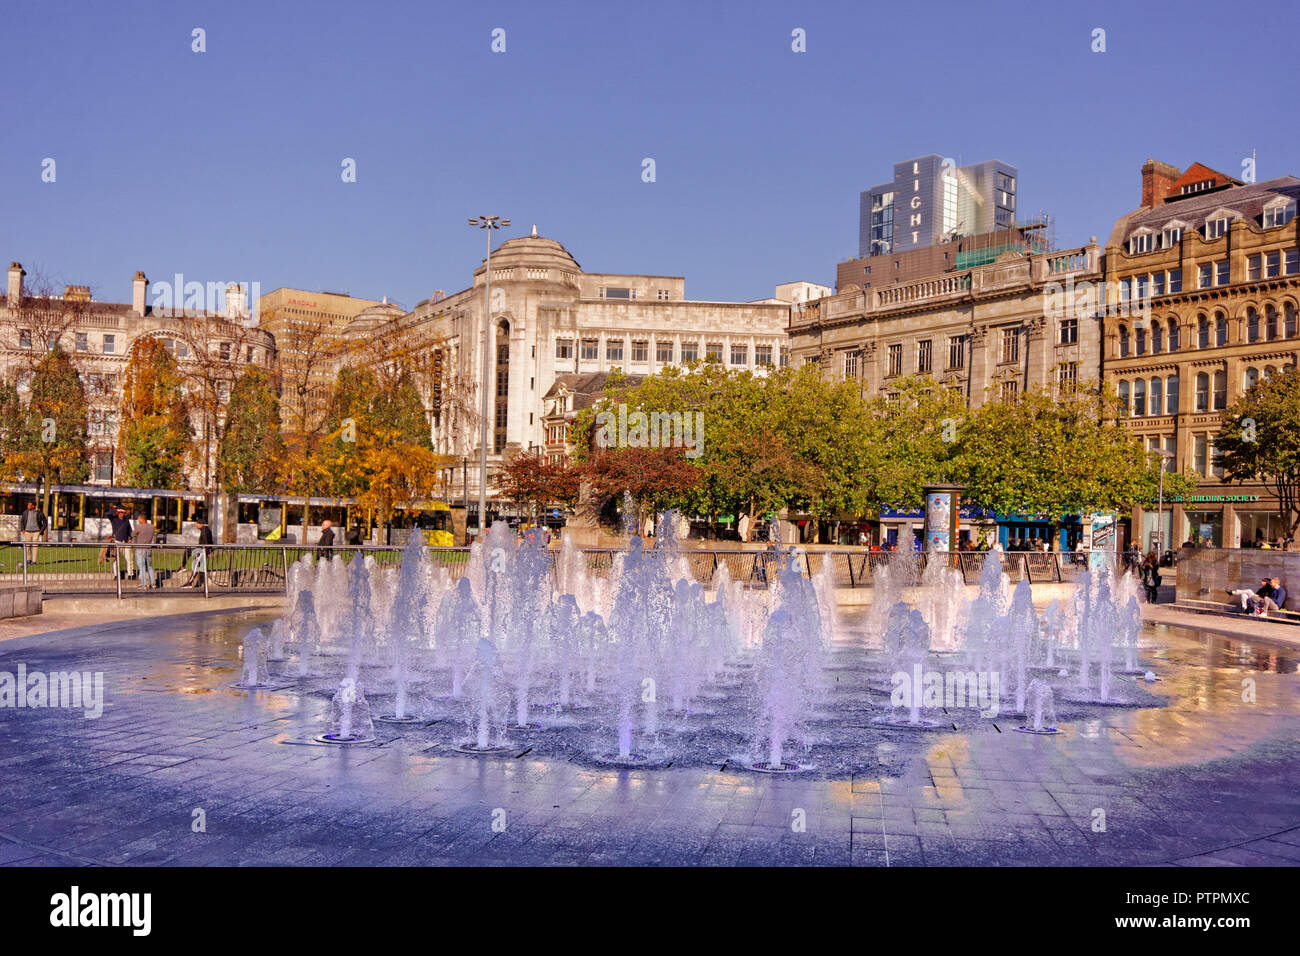 Fountains in Piccadilly Gardens, Manchester City Centre, Greater Manchester, England. UK. - Stock Image